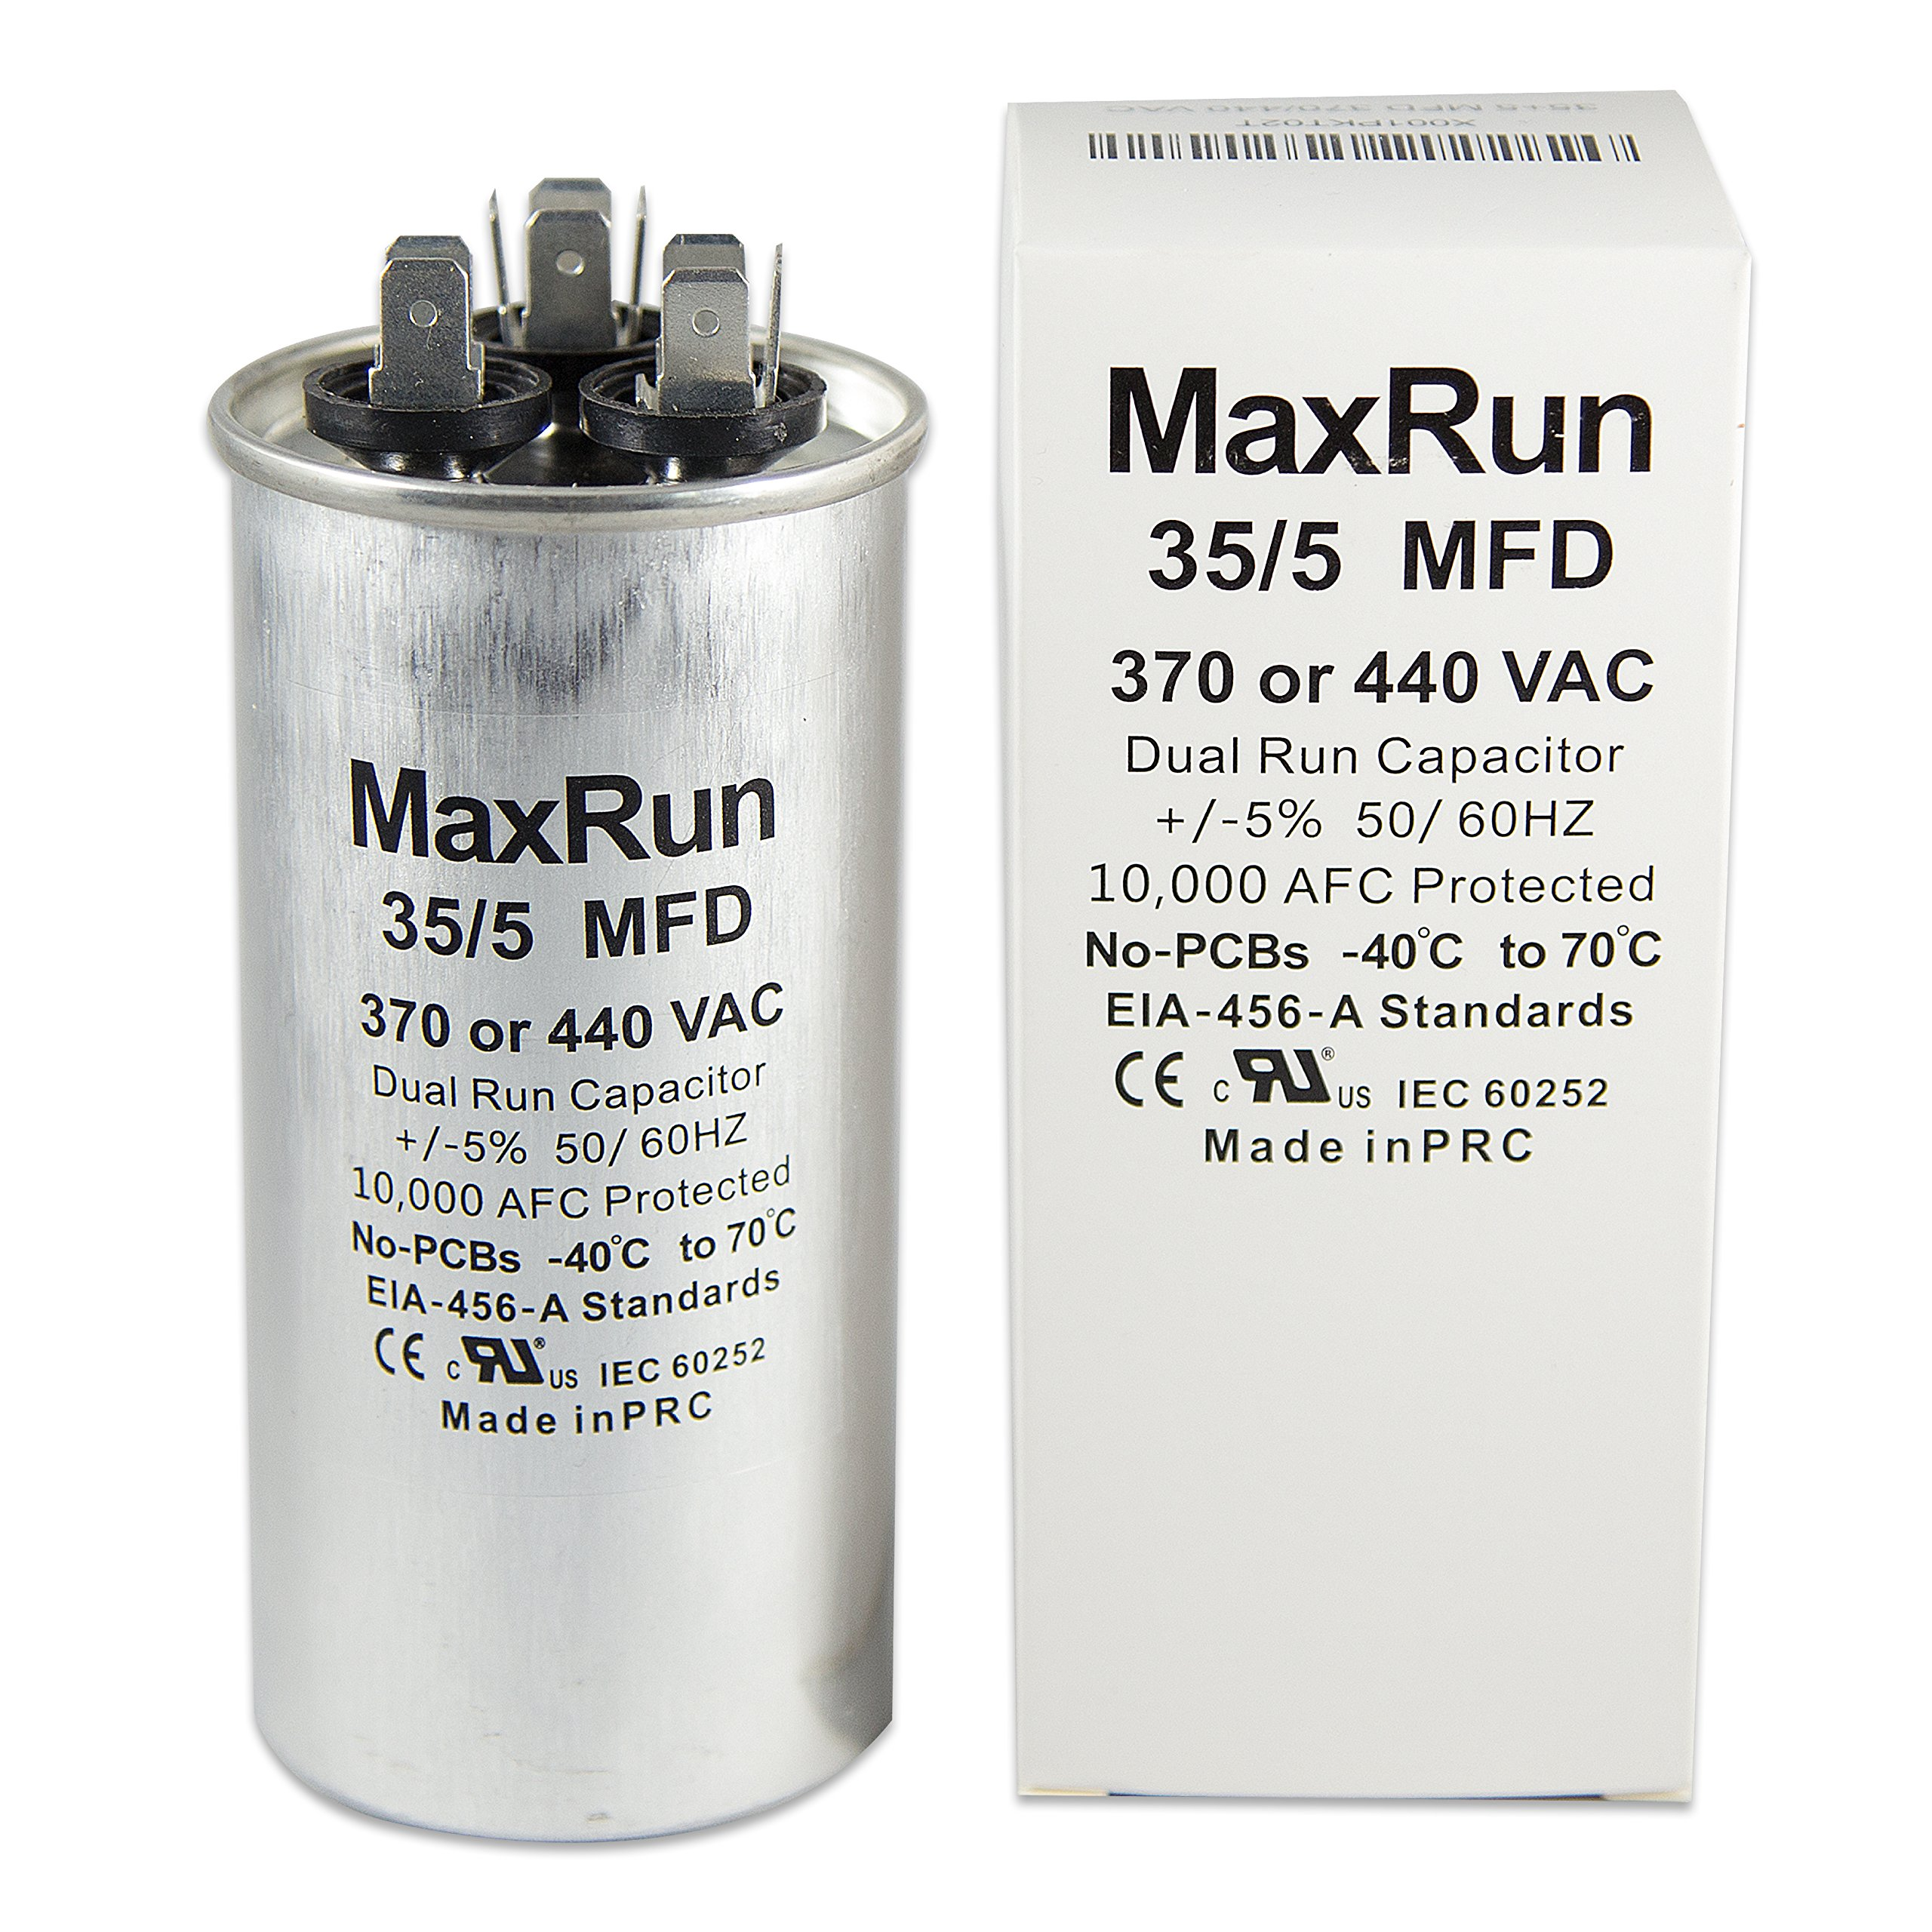 MAXRUN 35+5 MFD uf 370 or 440 Volt VAC Round Motor Dual Run Capacitor for AC Air Conditioner Condenser - 35/5 uf MFD 440V Straight Cool or Heat Pump - Will Run AC Motor and Fan - 1 Year Warranty